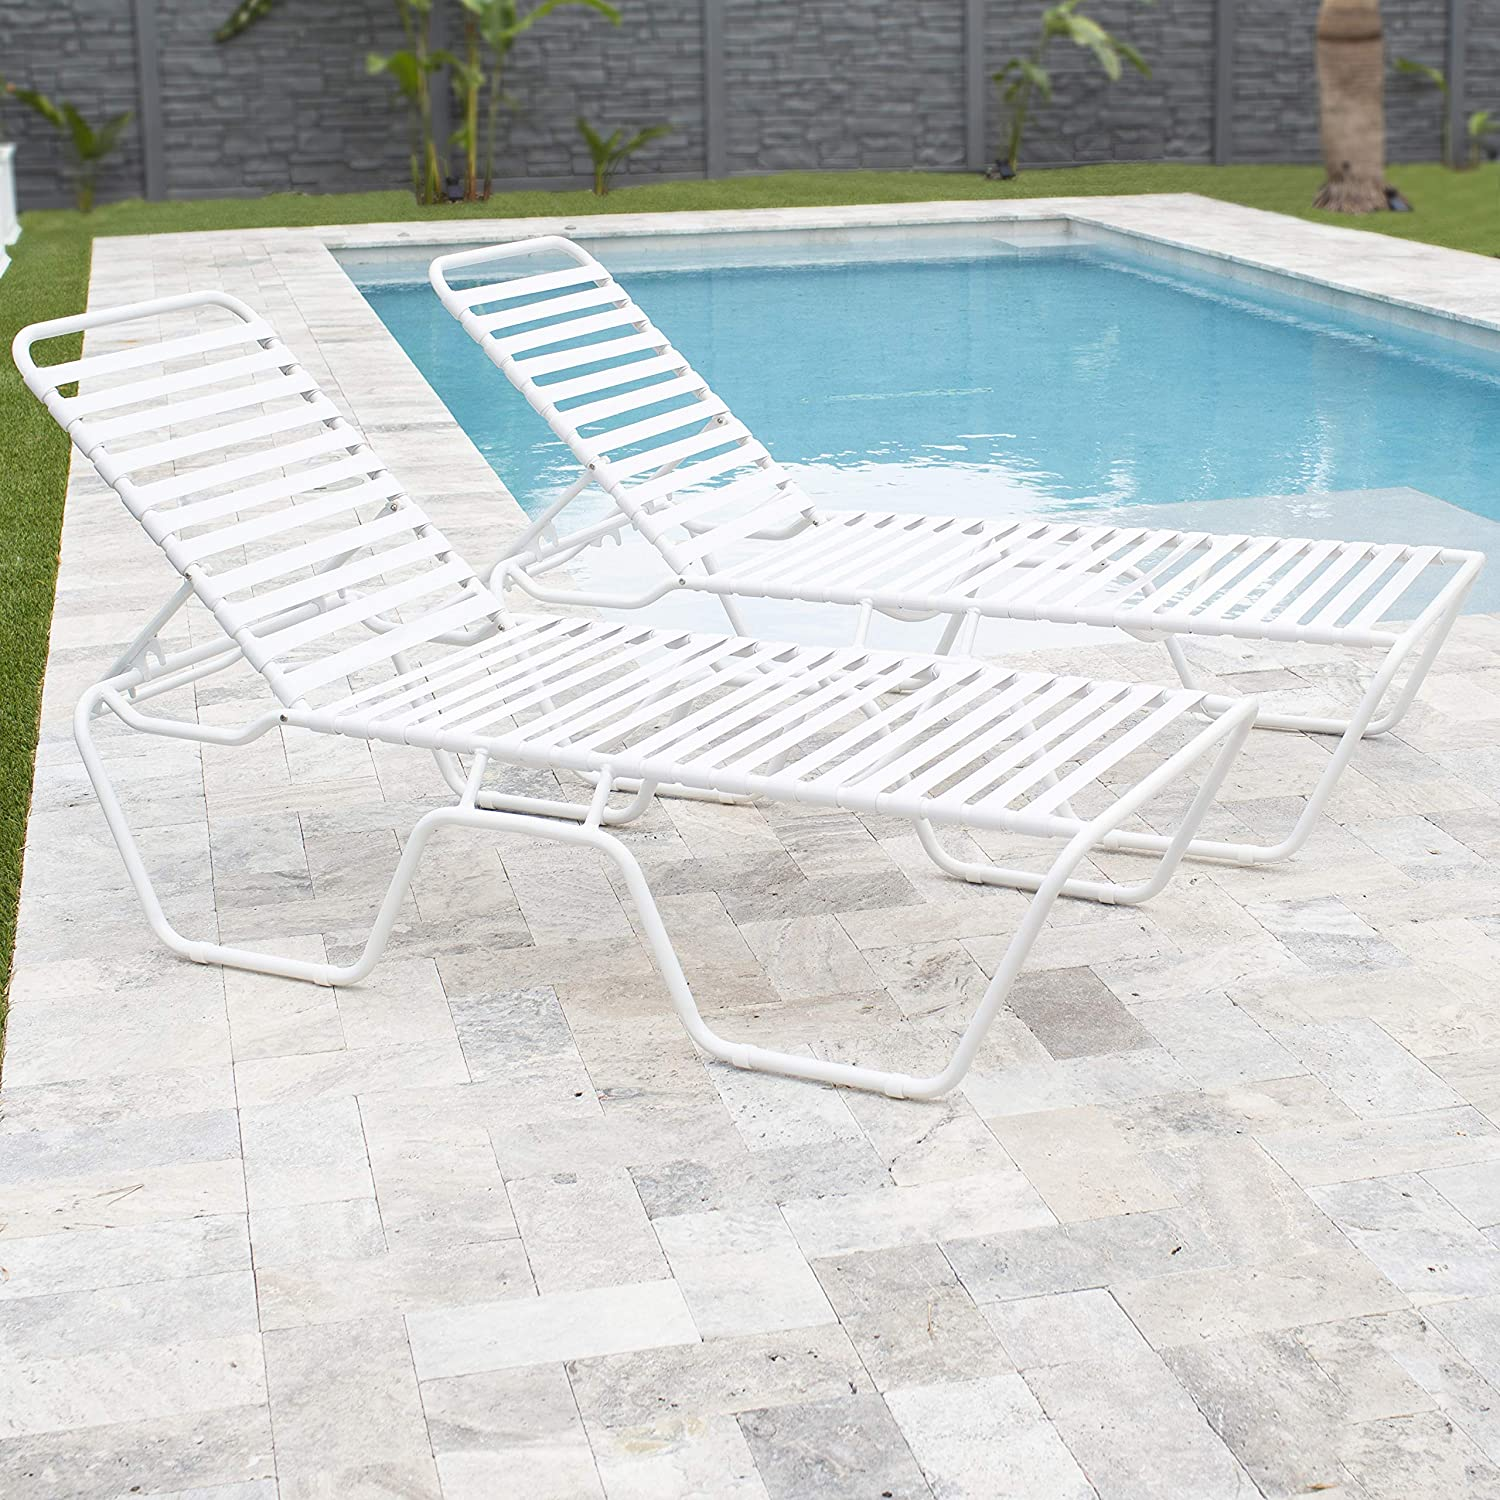 Mix Gulfstream Poolside Patio Outdoor Commercial Grade Single Strap Lounge  Chaise, White